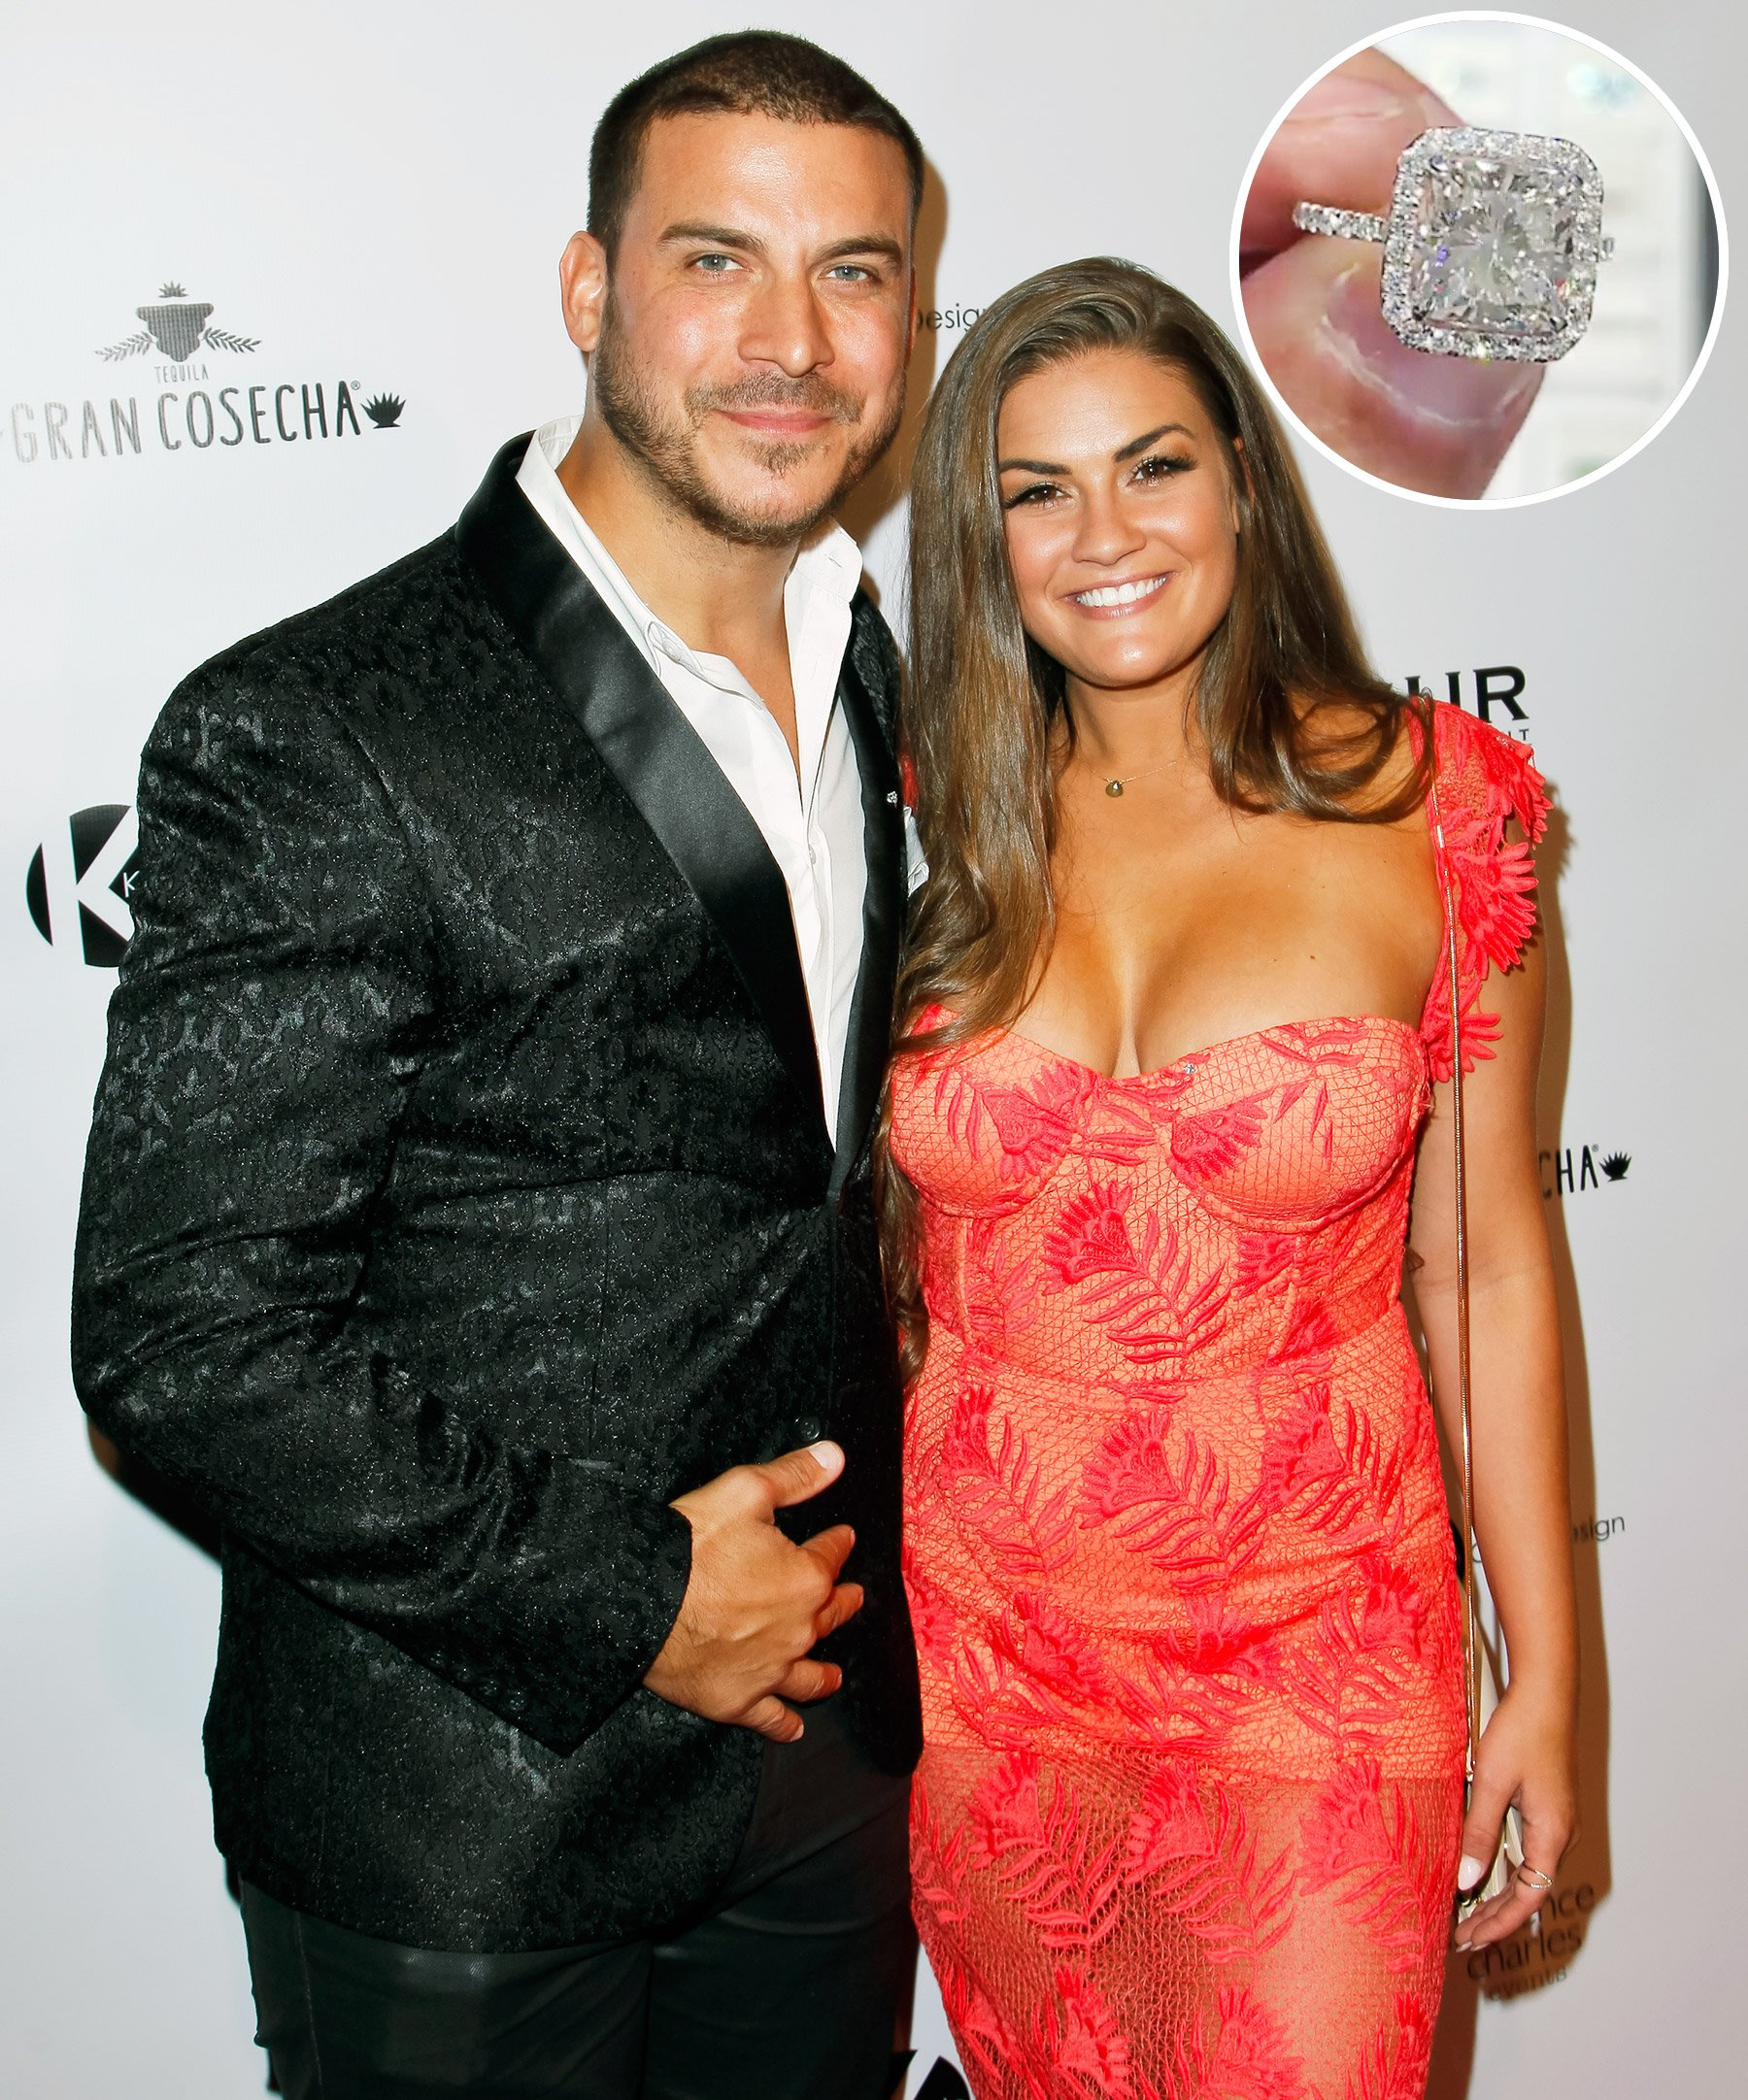 Celebrity Wedding Sets: All The Details On Vanderpump Rules' Brittany Cartwright's